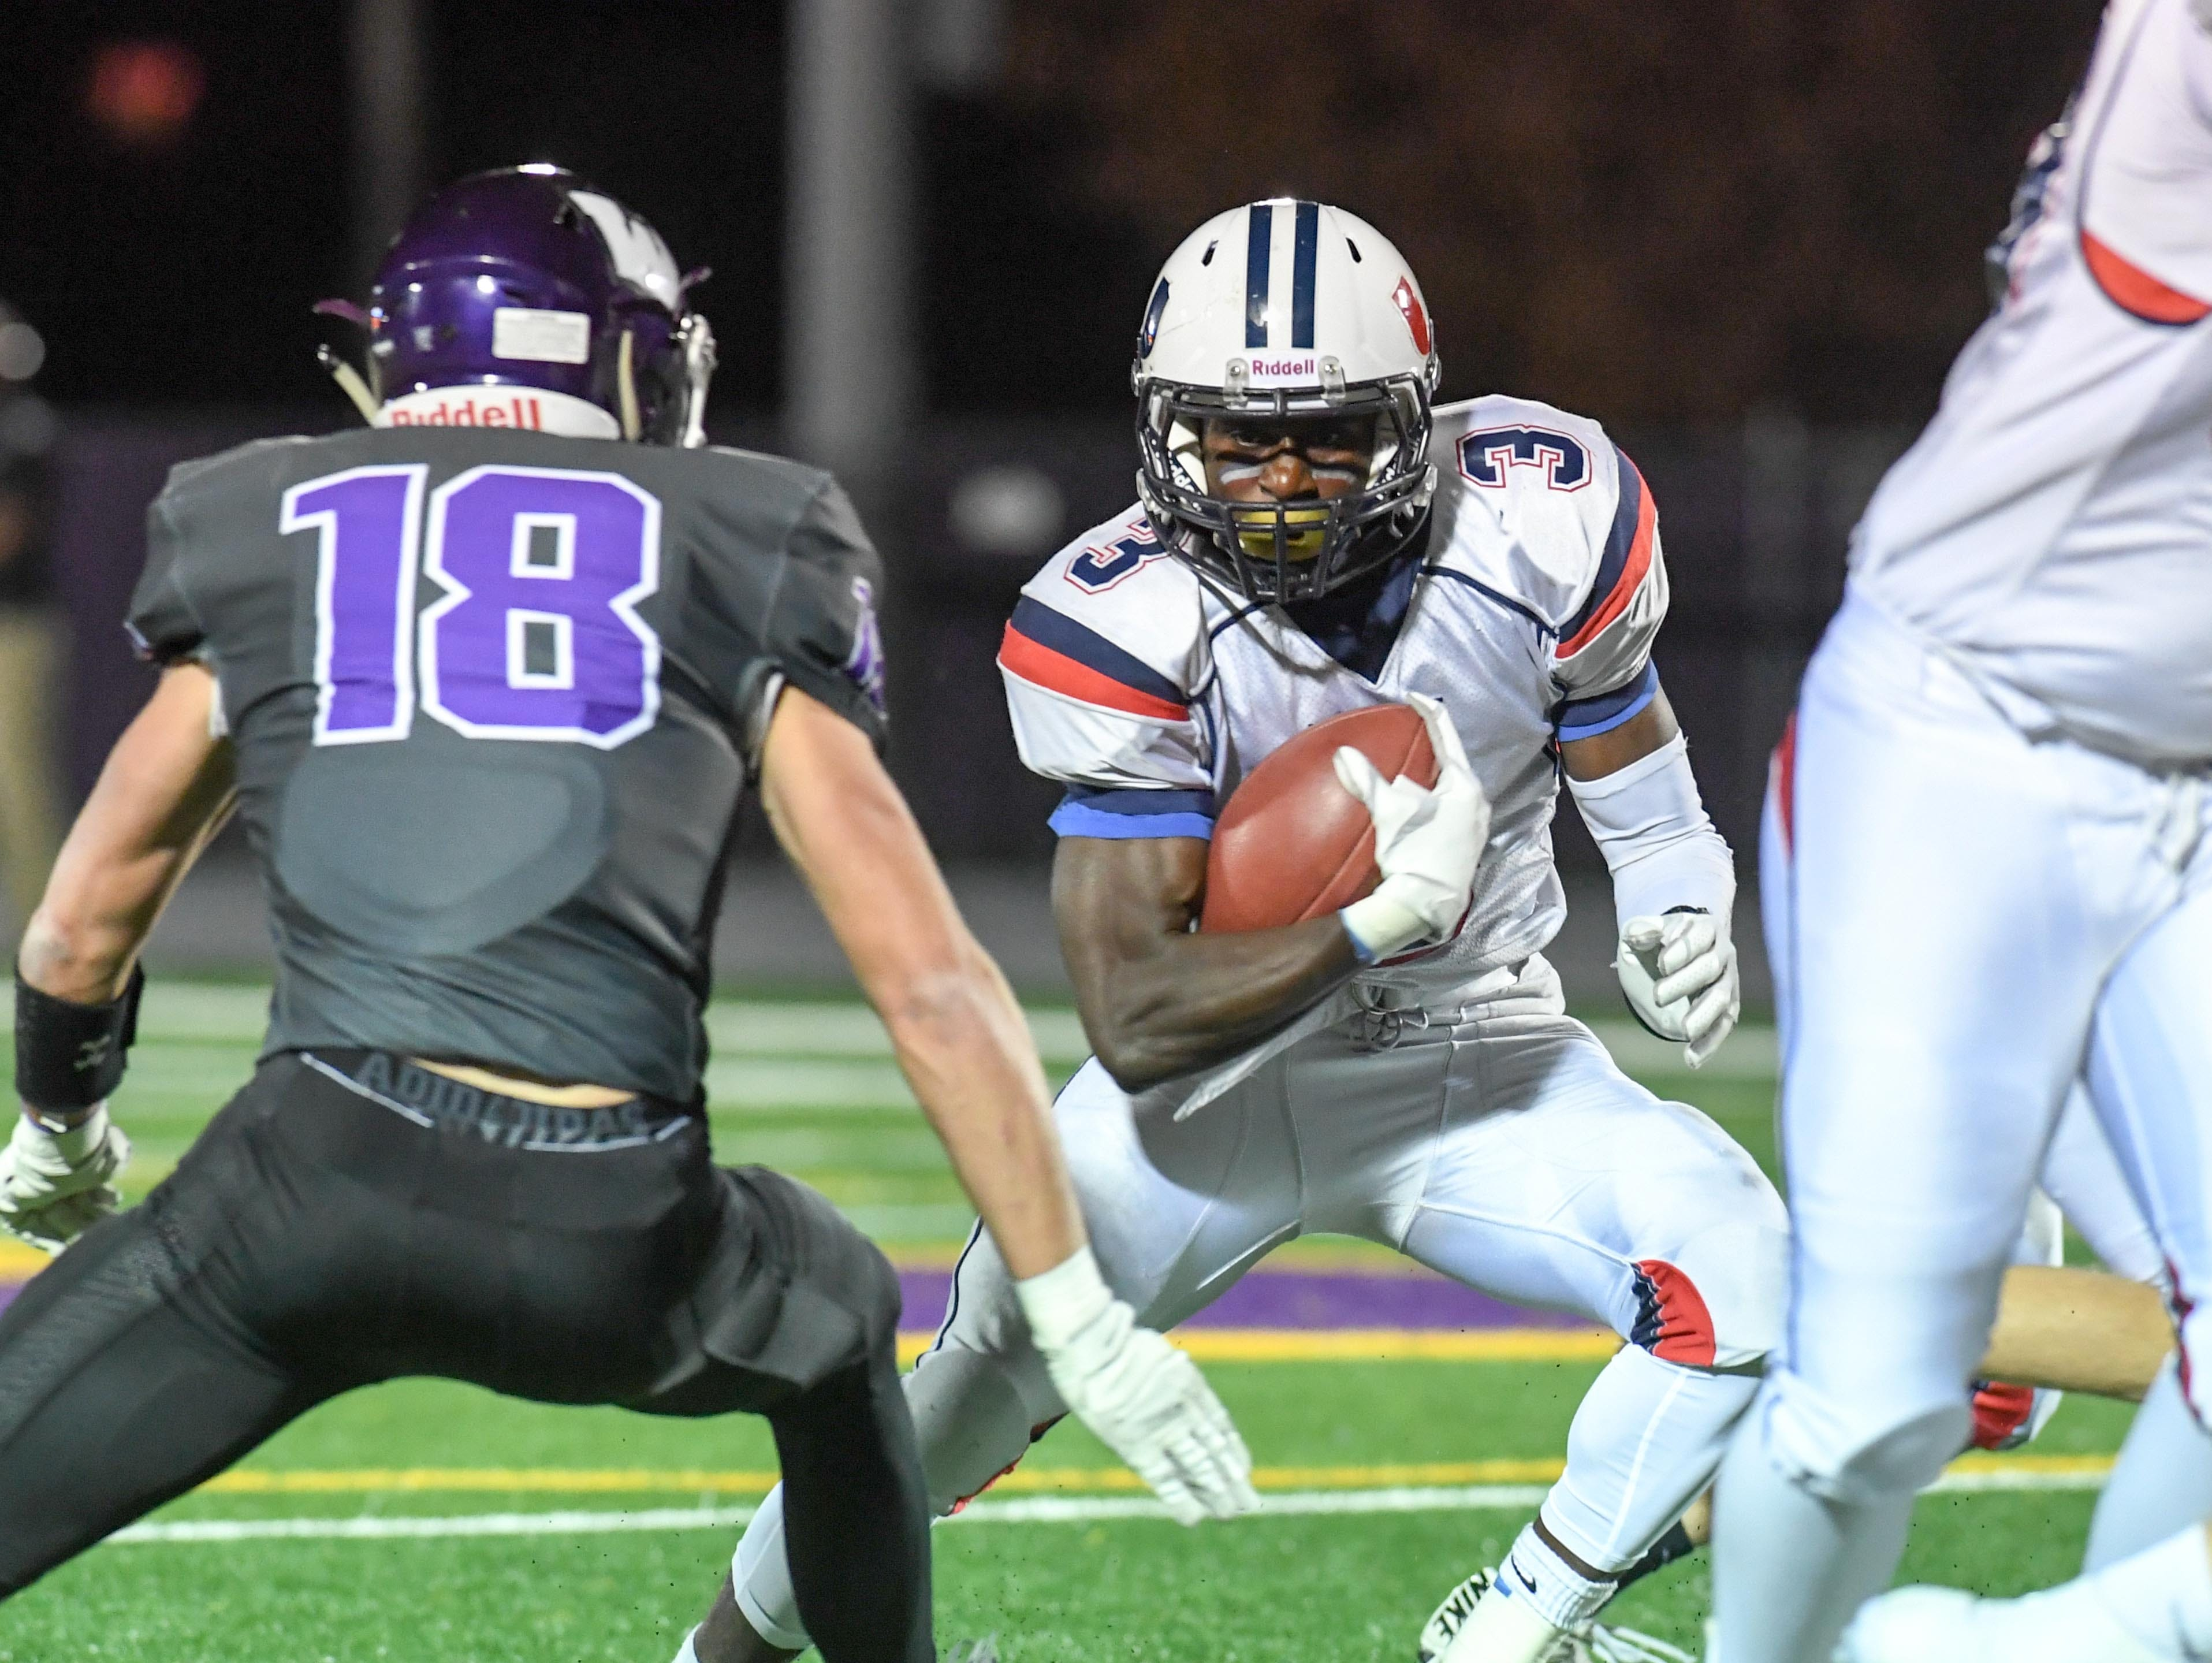 Urbandale's Harrison Waylee (3) looks for running room as  Waukee's Zach Eaton (18) defends on Friday, Oct. 26, 2018 during a playoff game between the Waukee Warriors and the Urbandale J-Hawks at Waukee High School.